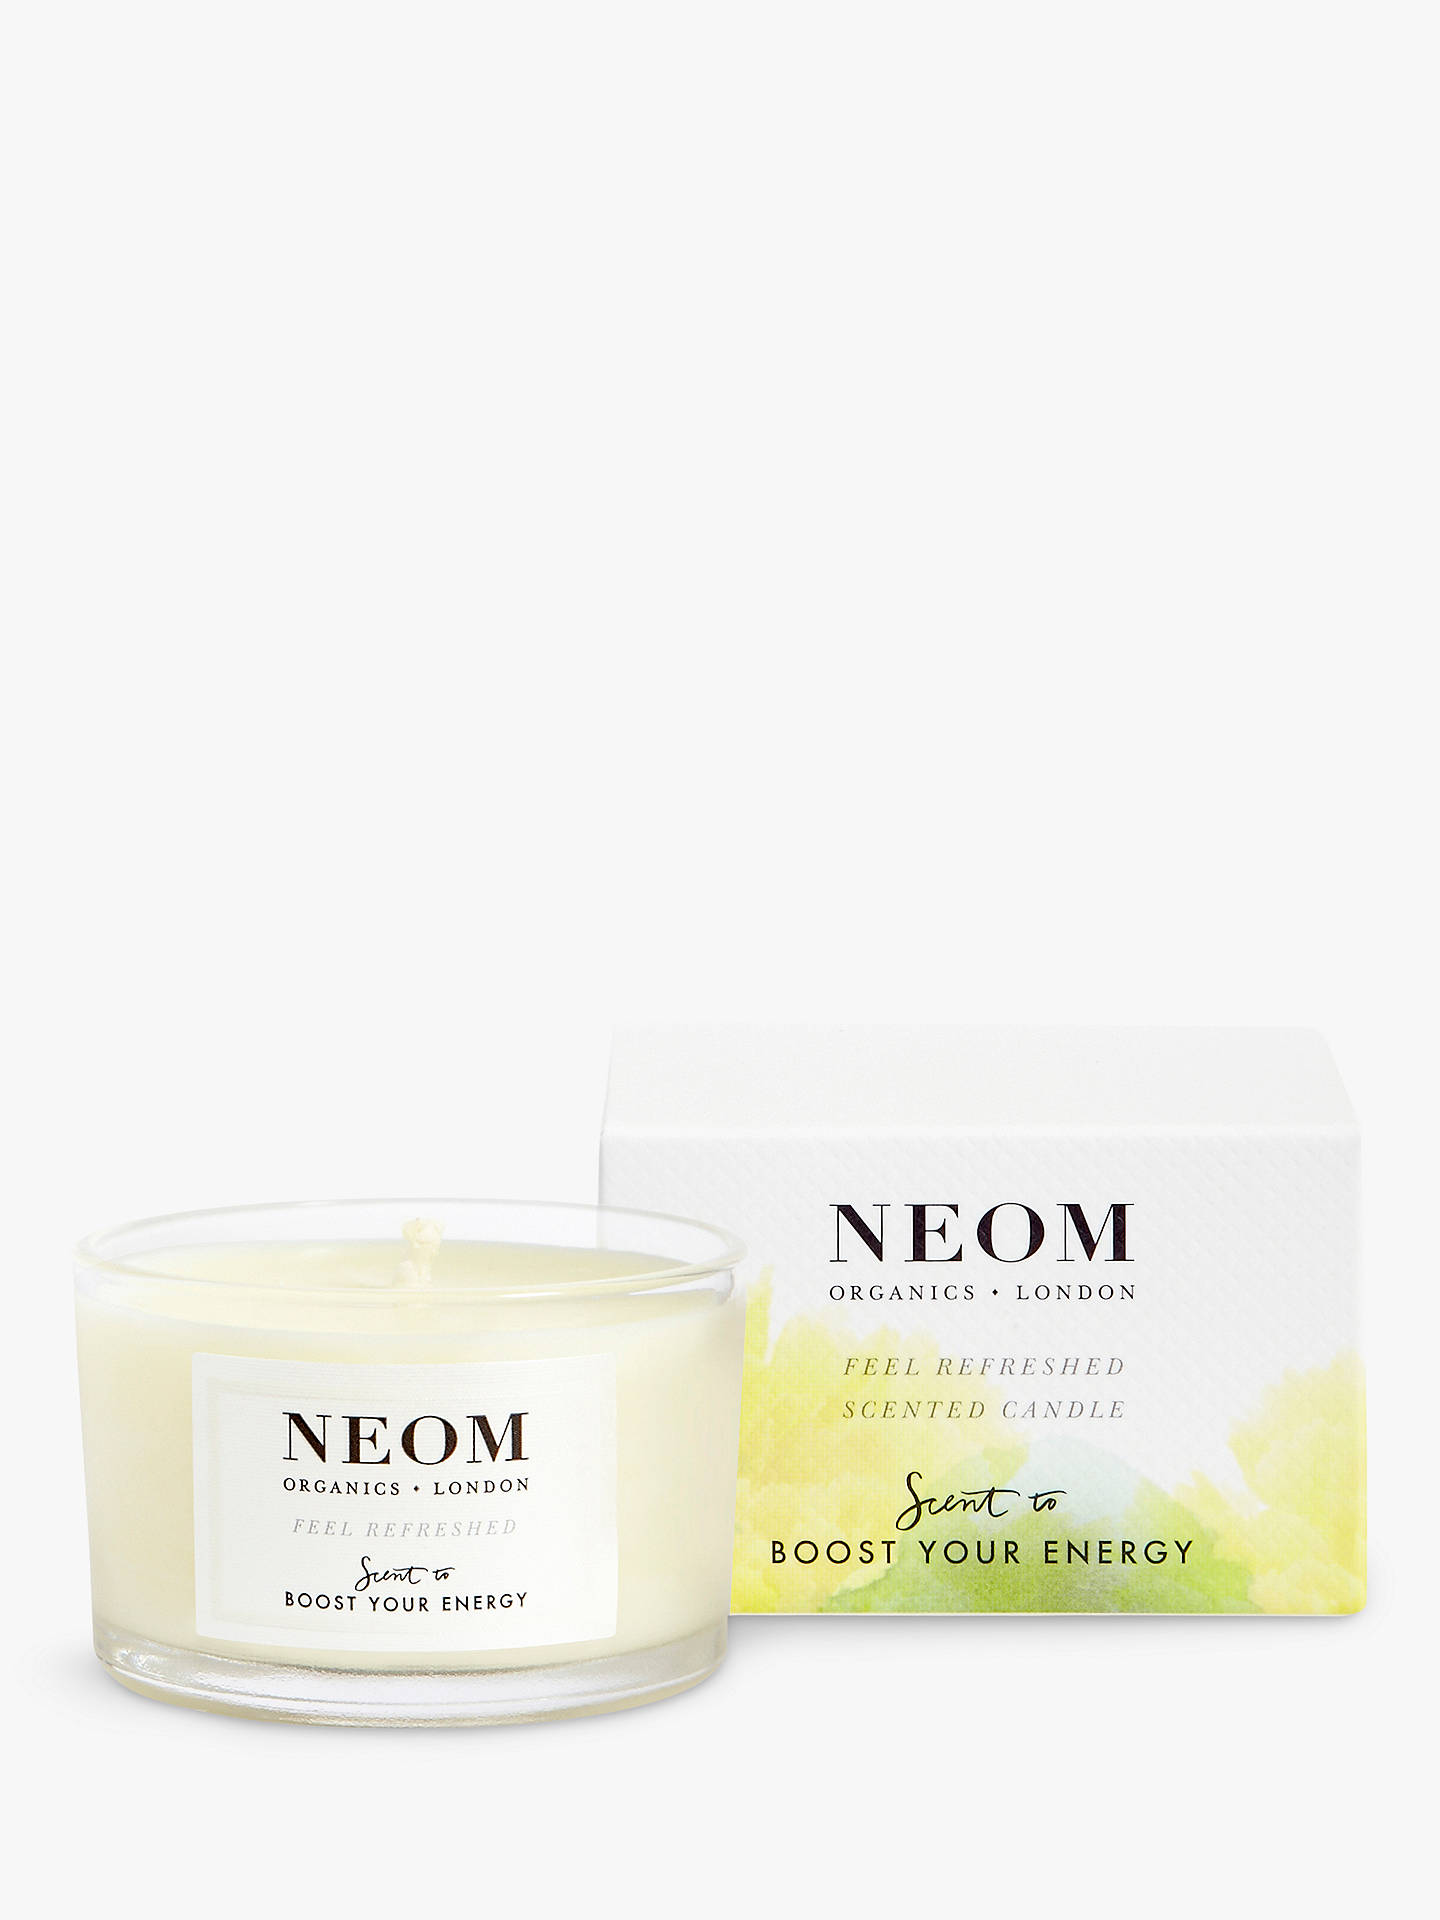 Buy Neom Organics London Feel Refreshed Travel Scented Candle Online at johnlewis.com